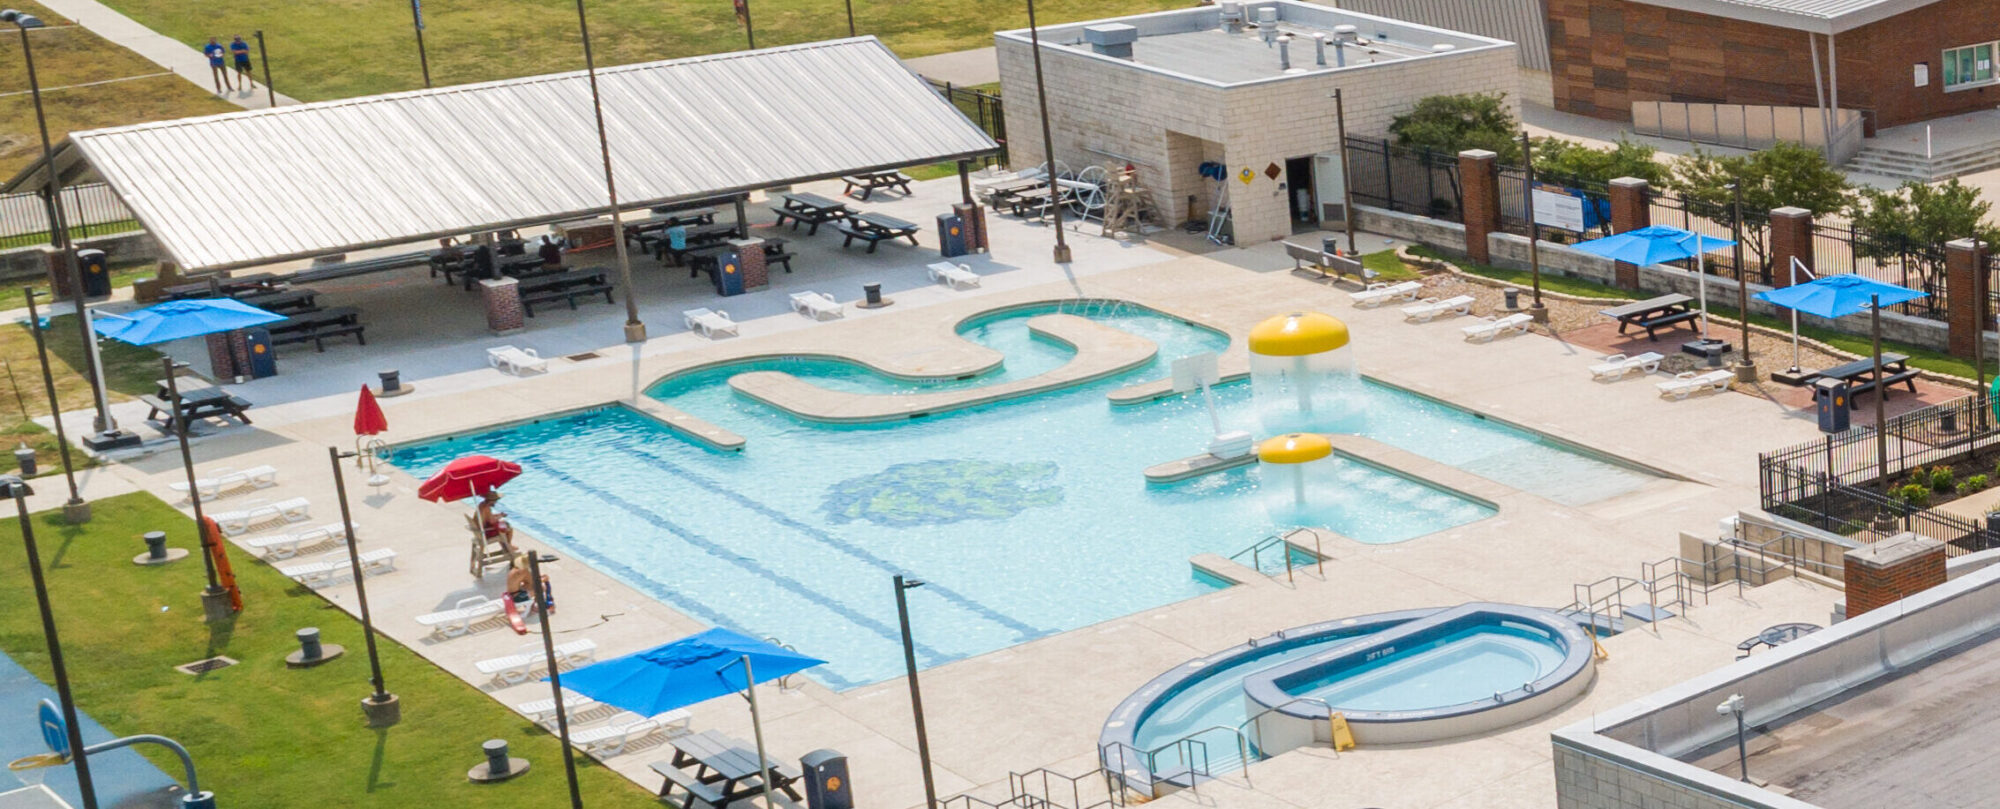 Pool area from the Morris Rec Center.